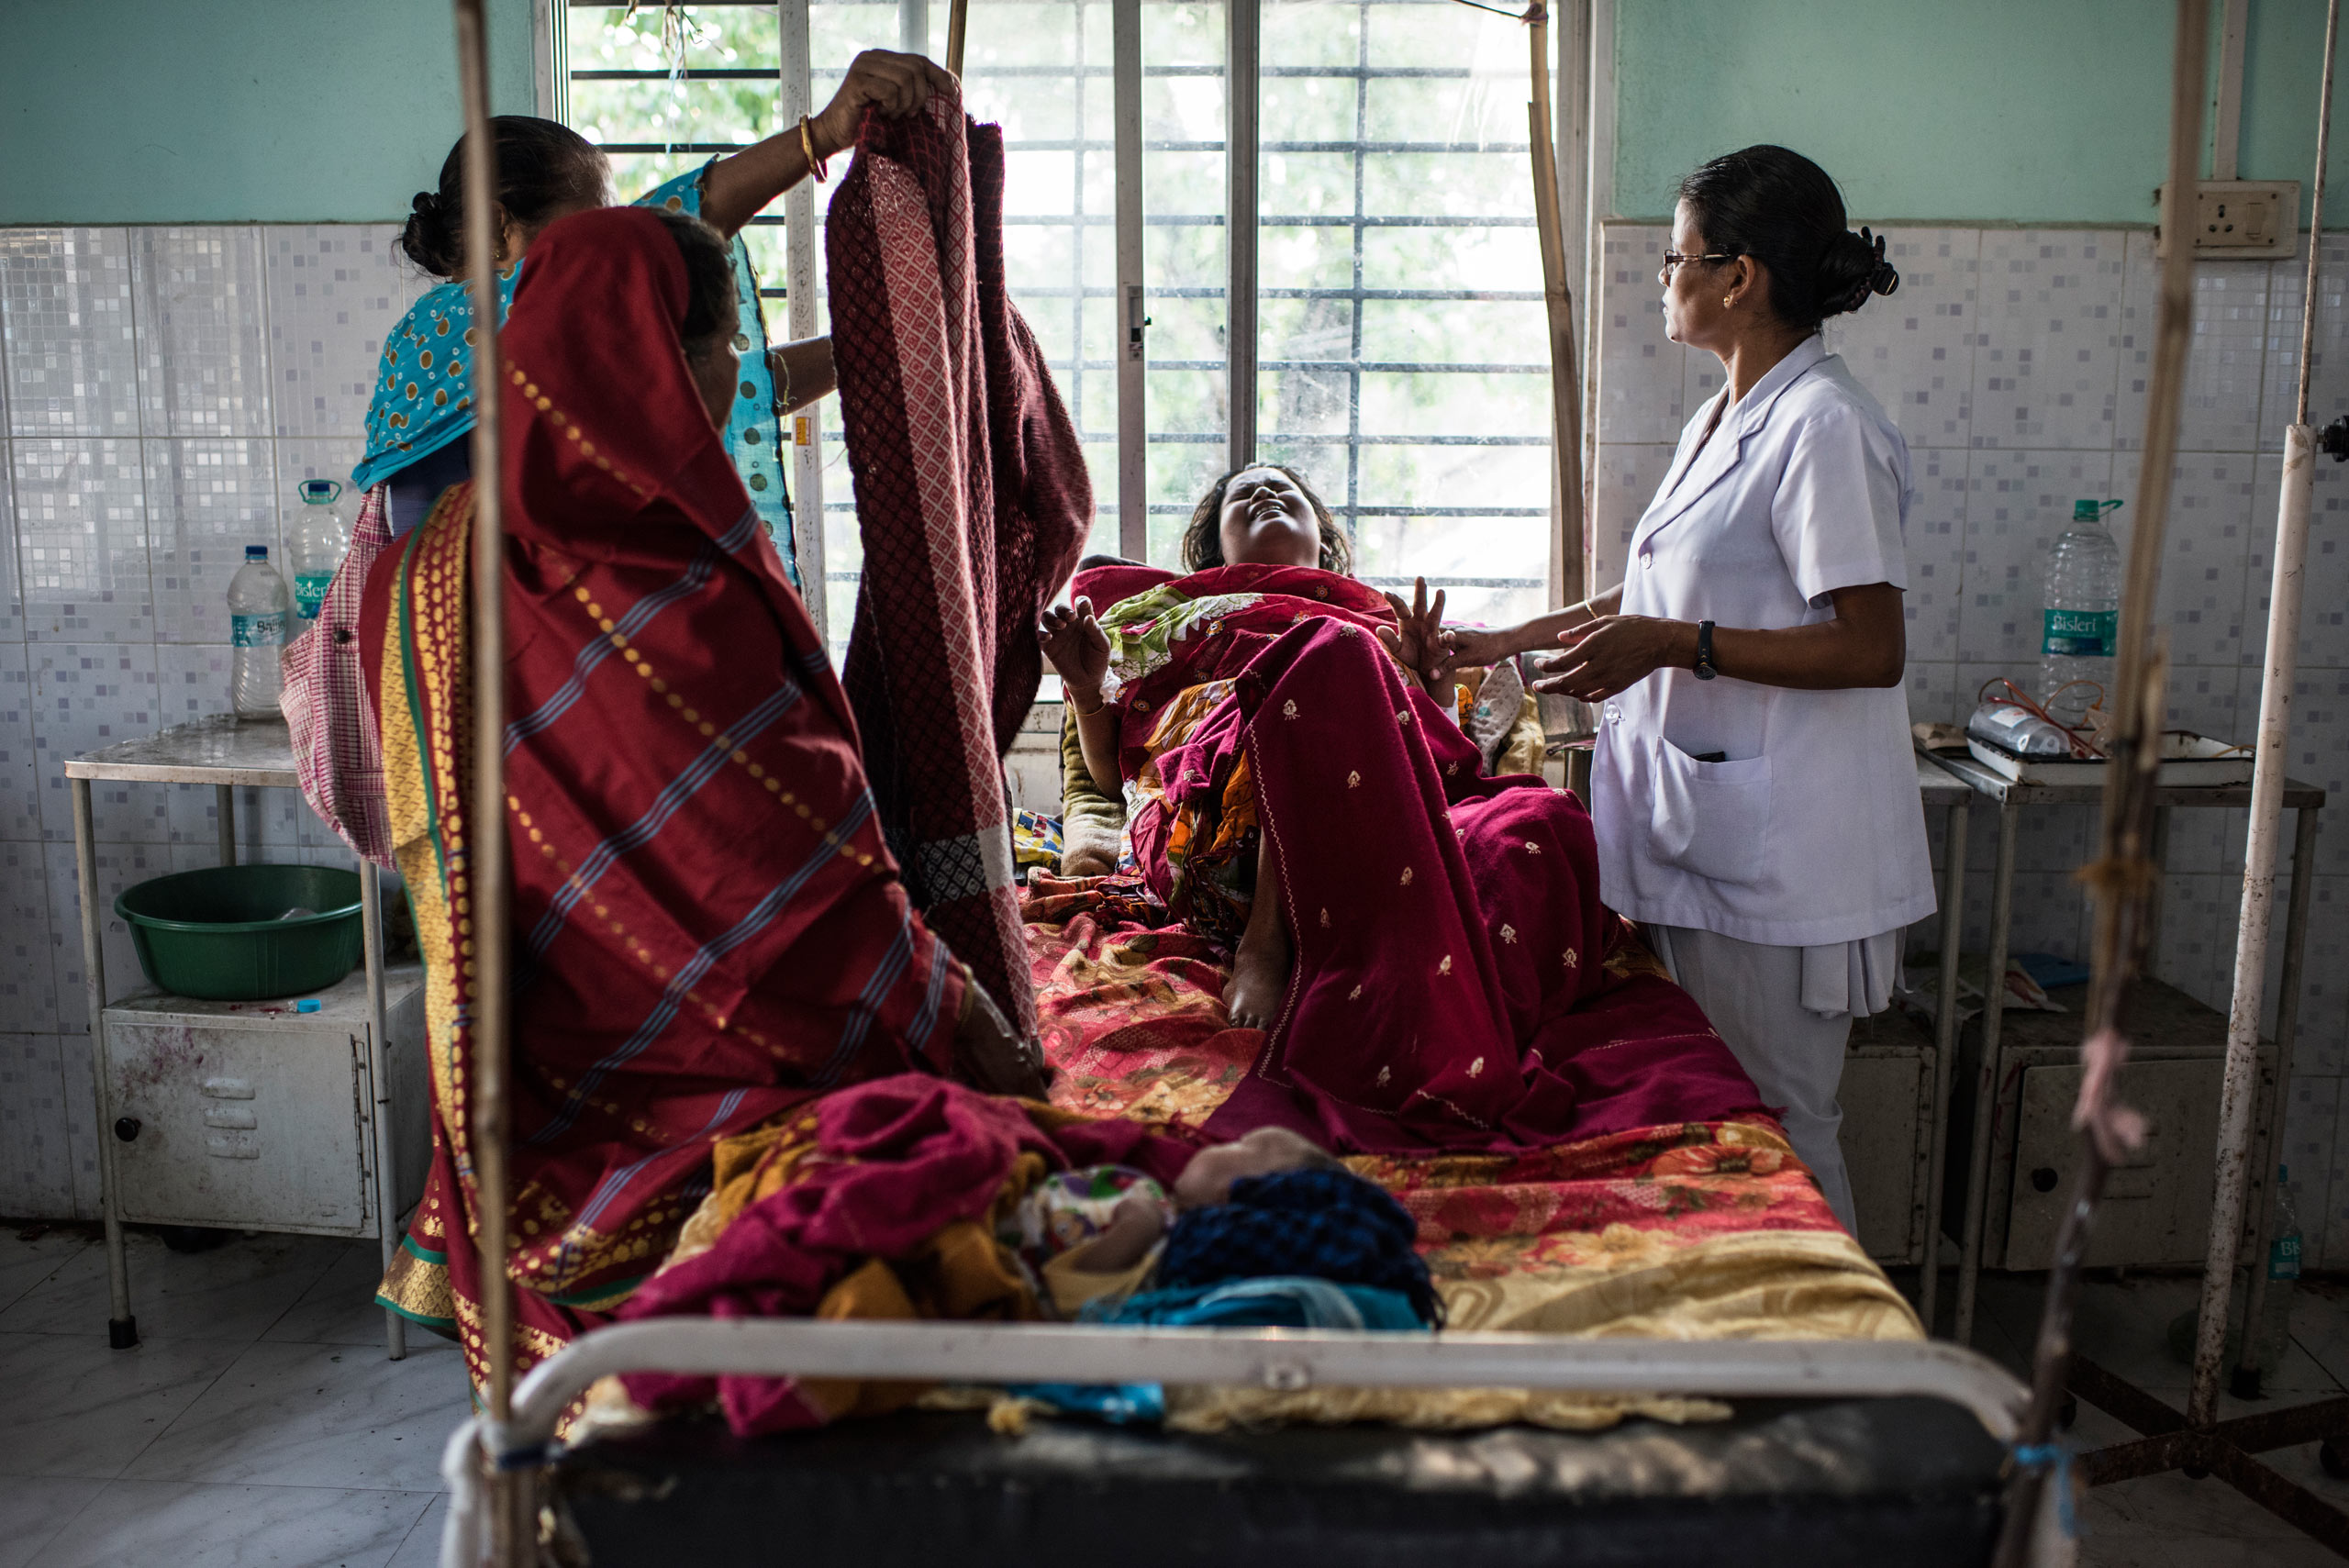 Nazreen Khatoon winces in pain as she lies gravely ill, suffering from severe postpartum anemia at the Tezpur Civil Hospital in Tezpur, Assam, India. April 2015.